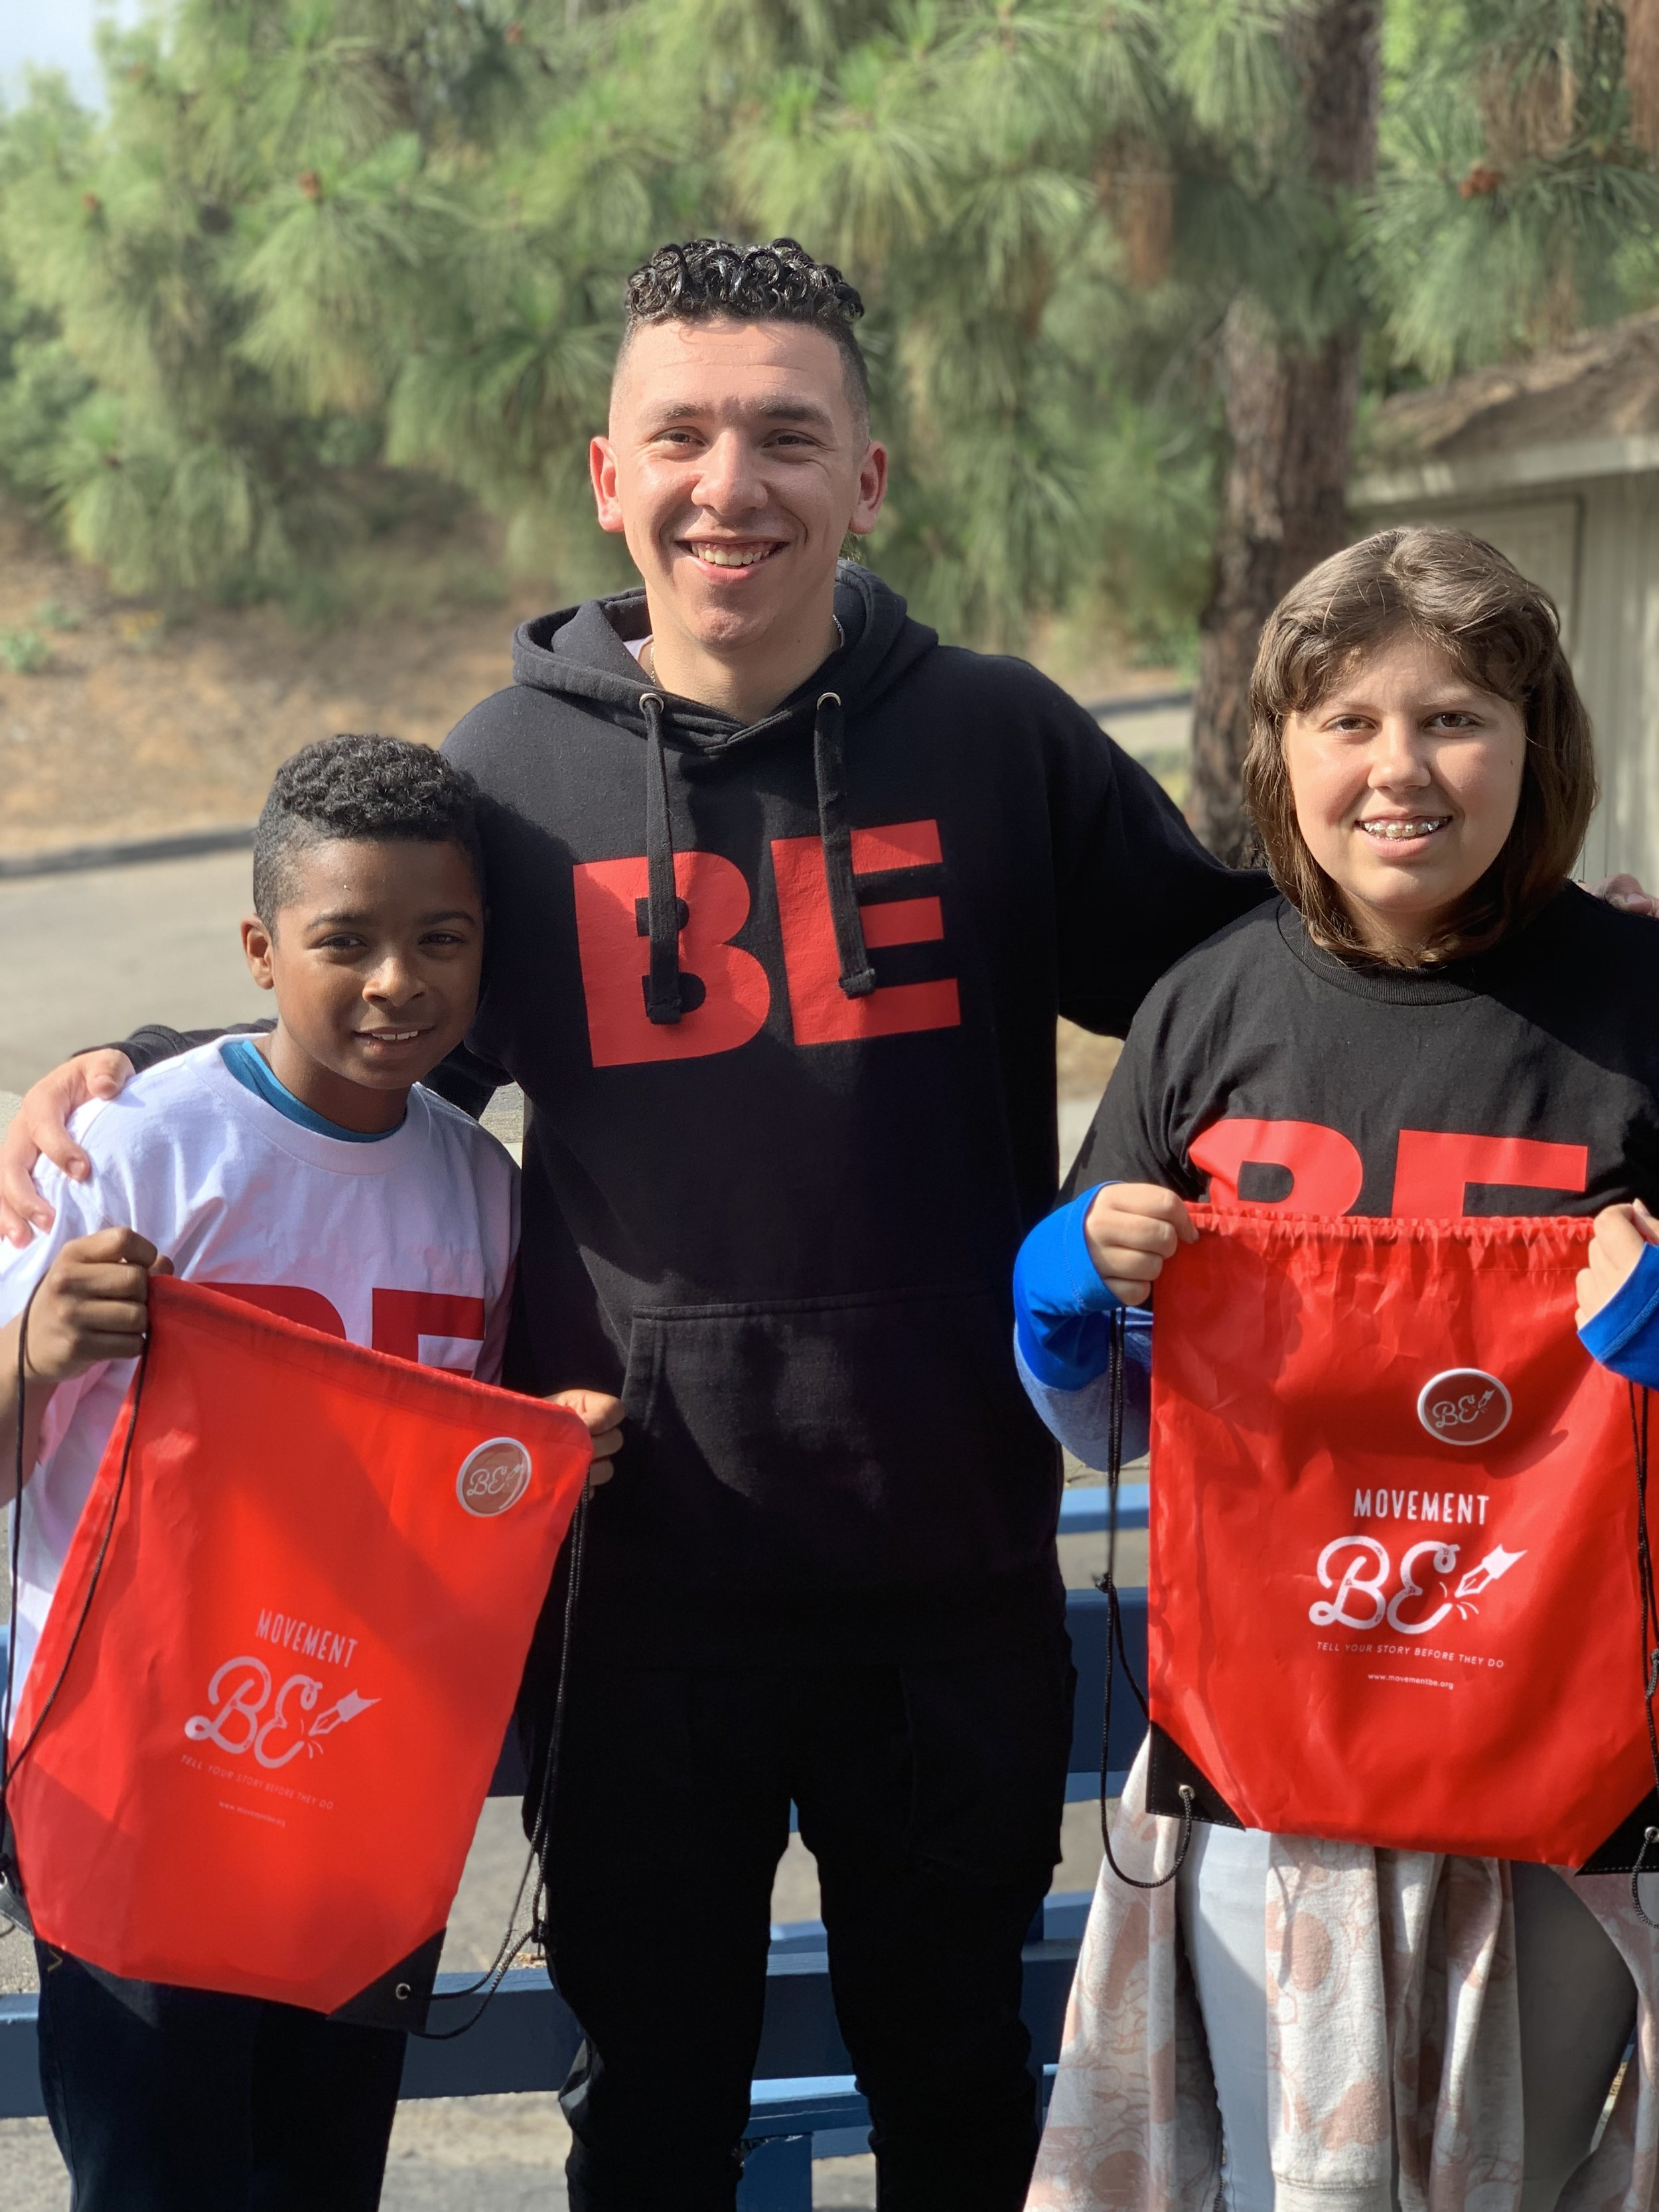 Instructor Emilio picked two brilliant students, Tyrell and Karen, to win some BE Swag Bags!